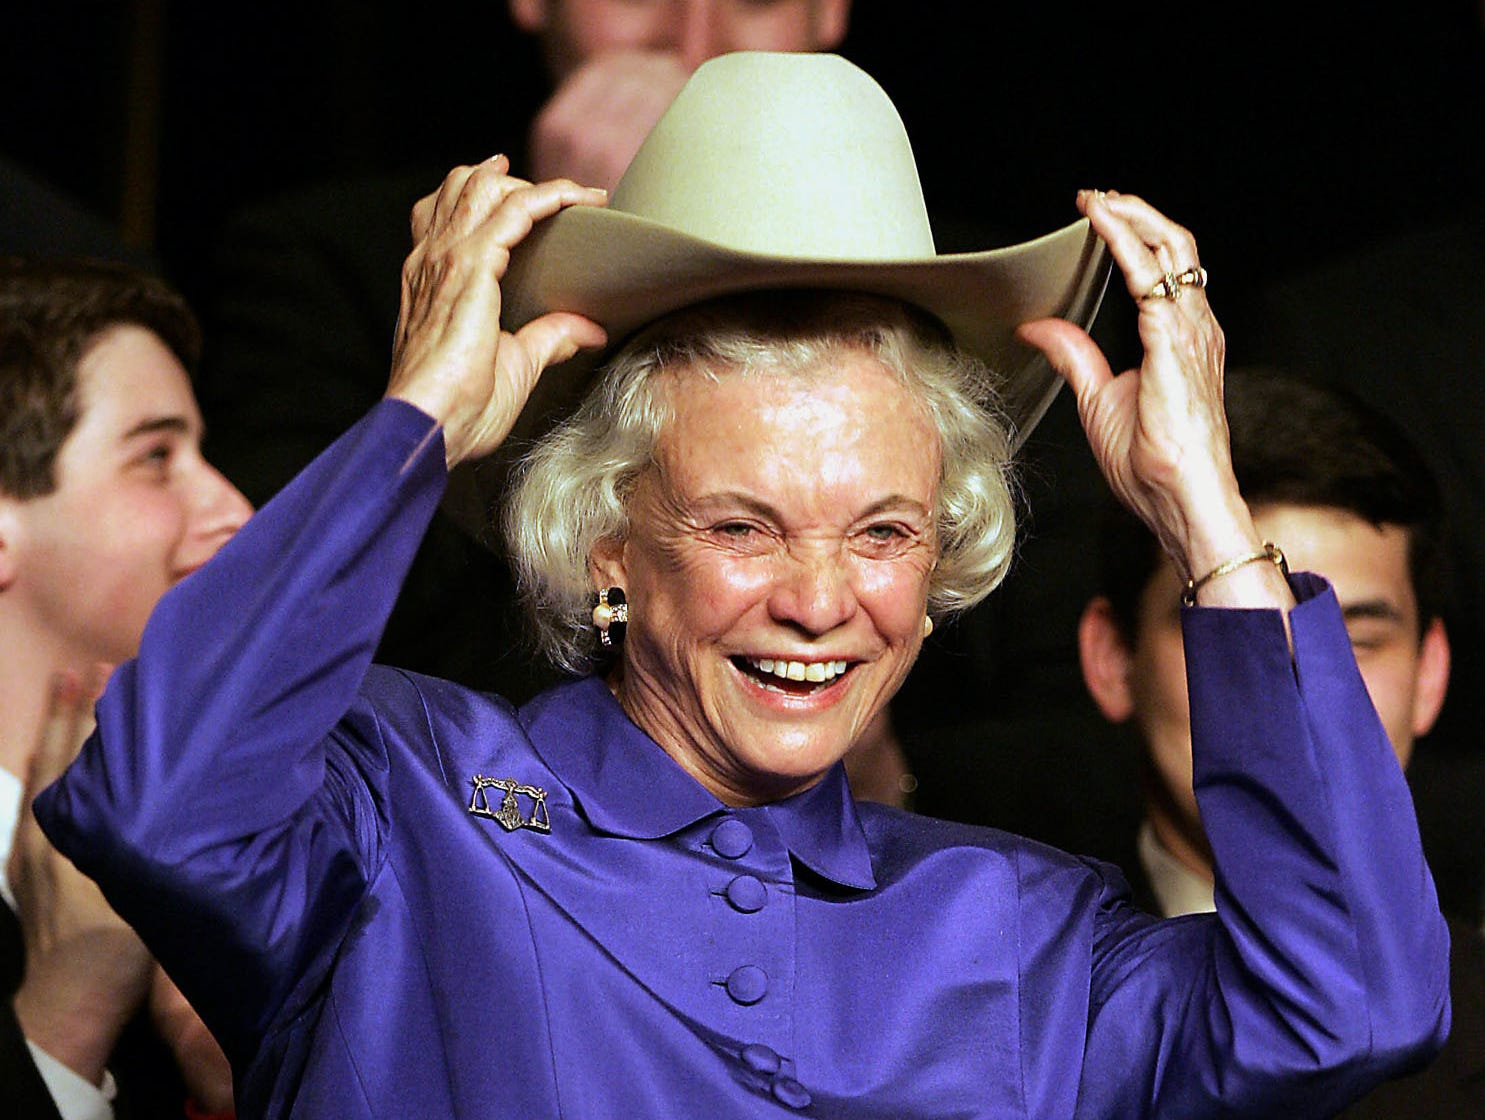 Supreme Court Justice Sandra Day O'Connor, an El Paso native, dons a cowboy hat, given to her during an event at the University of Houston Law Center, Thursday, March 10, 2005, in Houston.